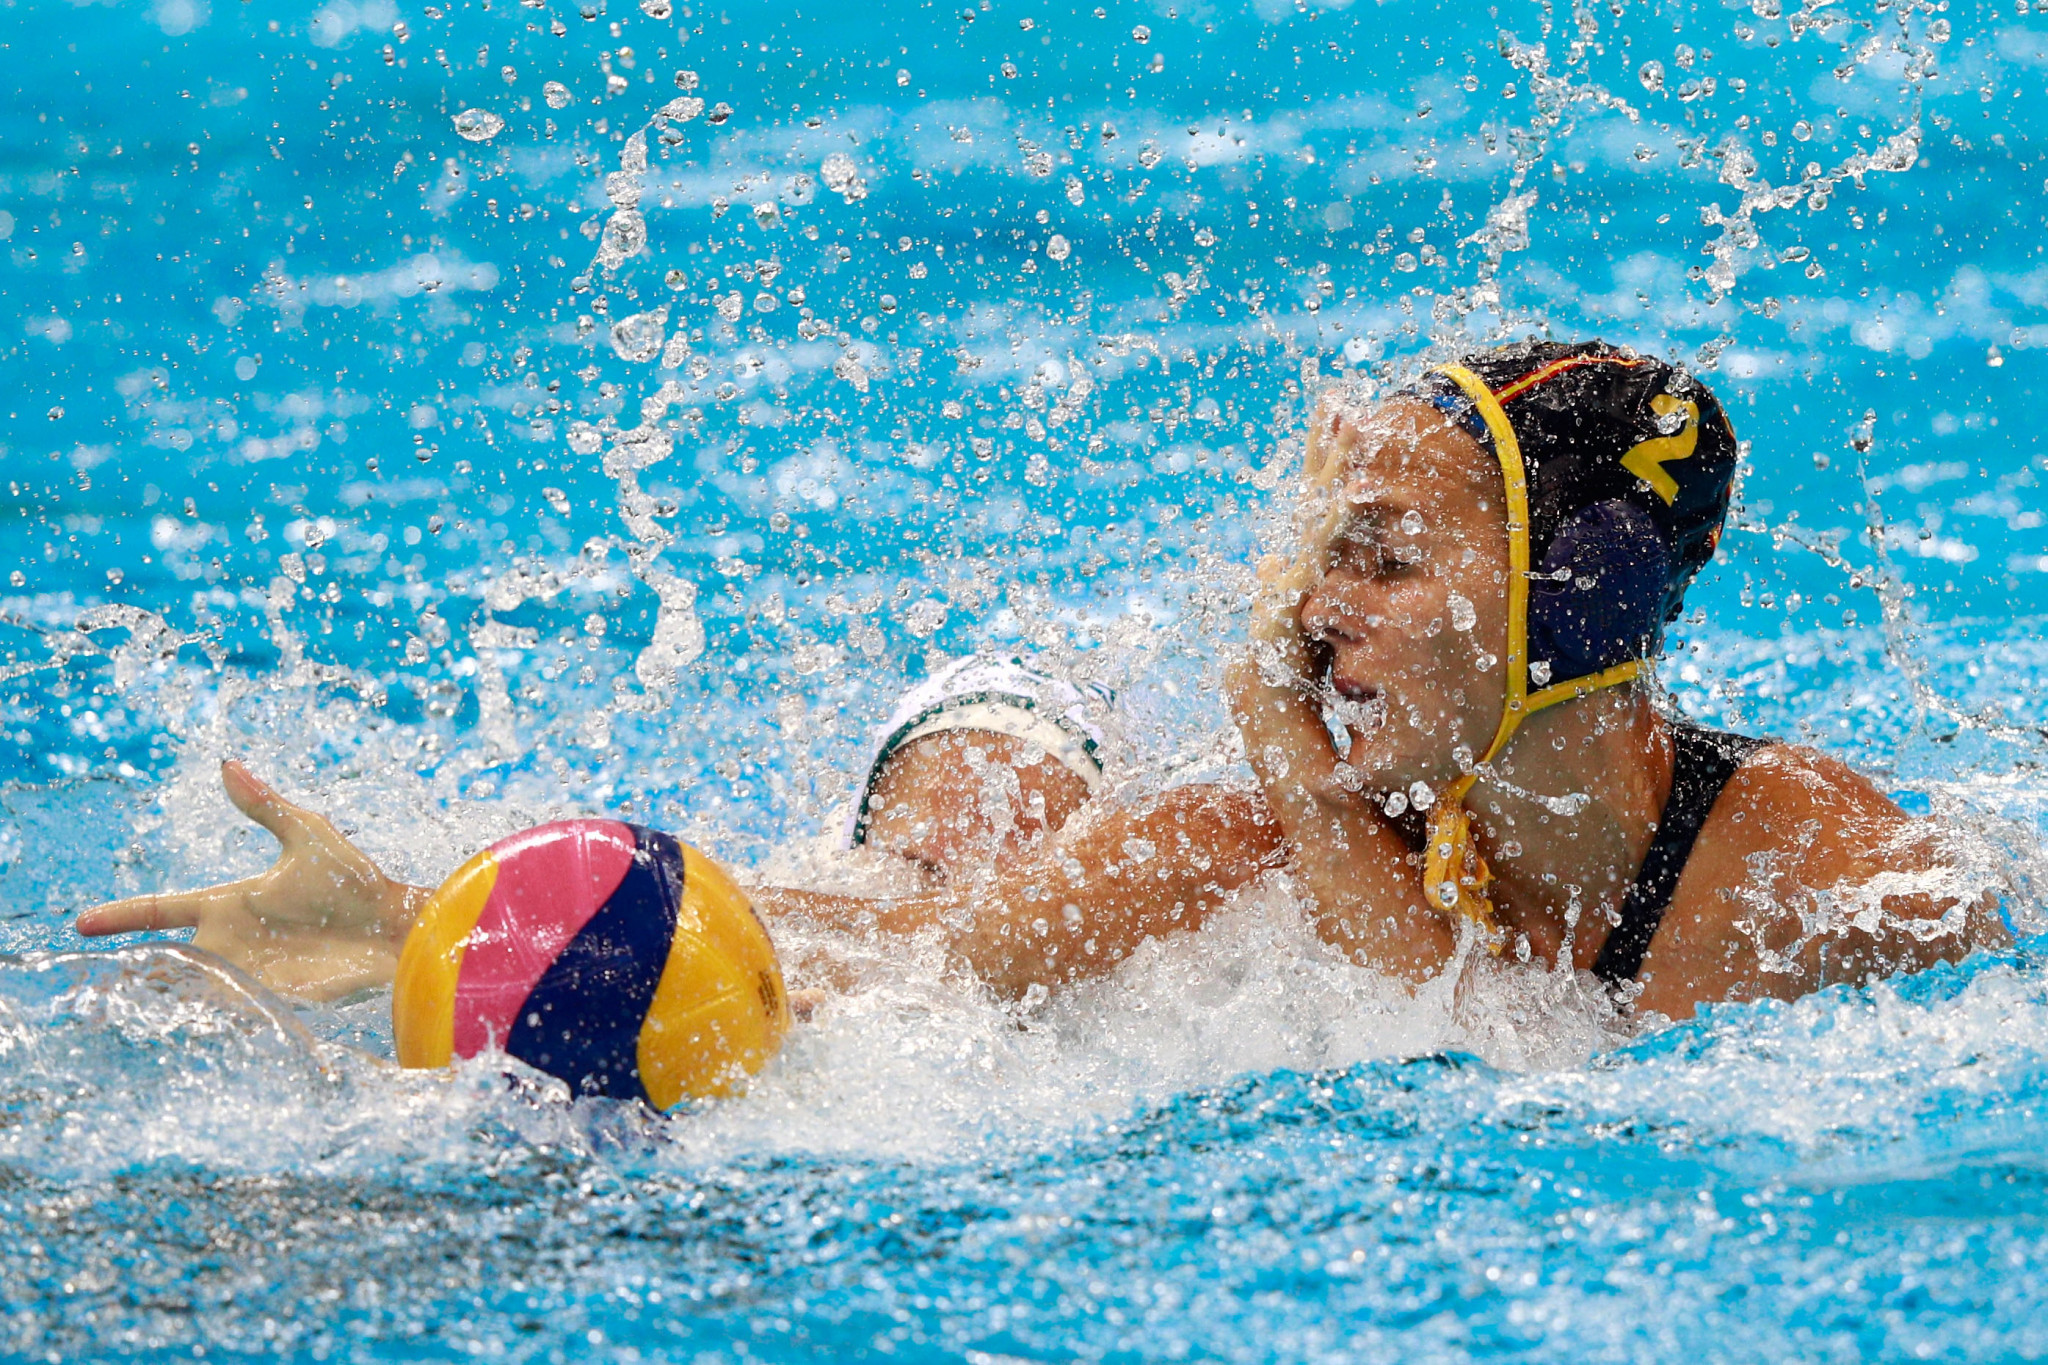 FINA postpones Olympic water polo qualifier in Italy